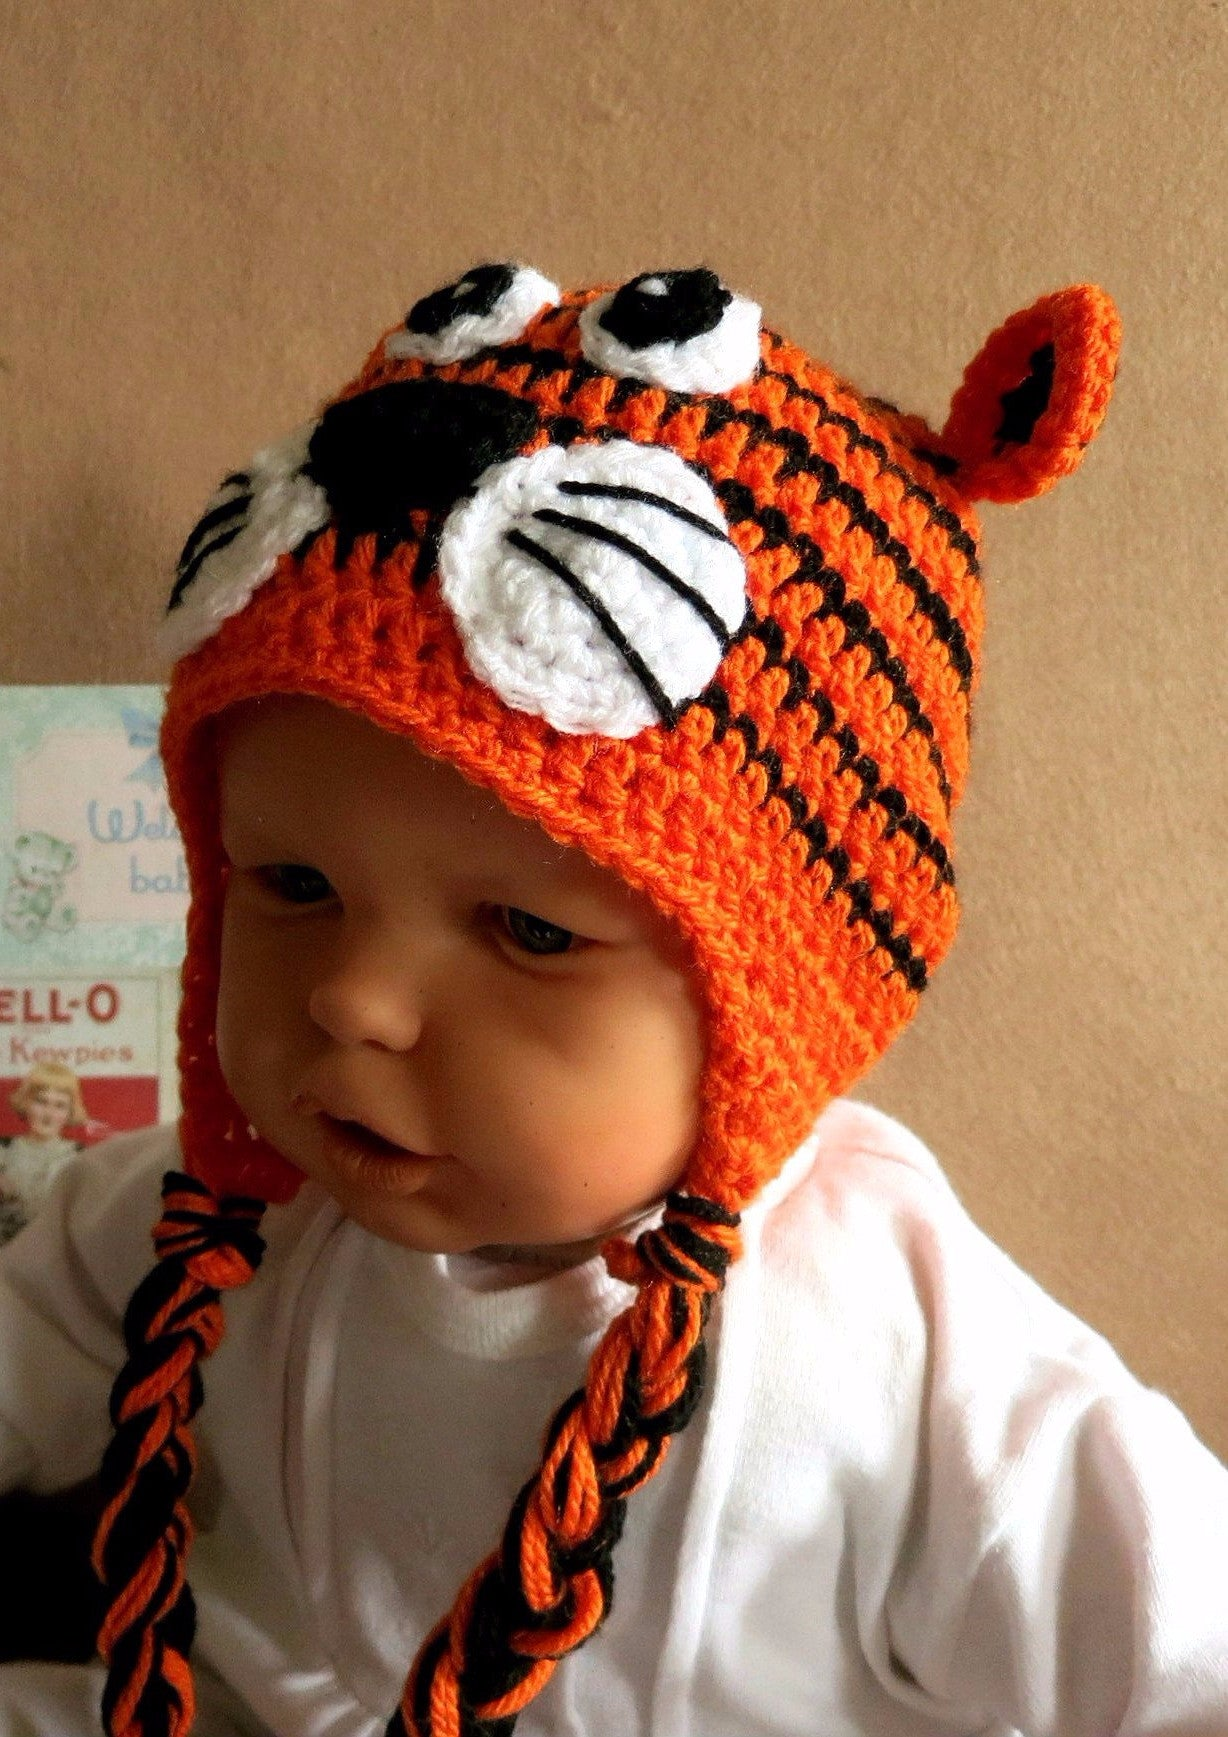 Tiger-Face-Beanie-Hand-Crocheted-Nchanted-Gifts